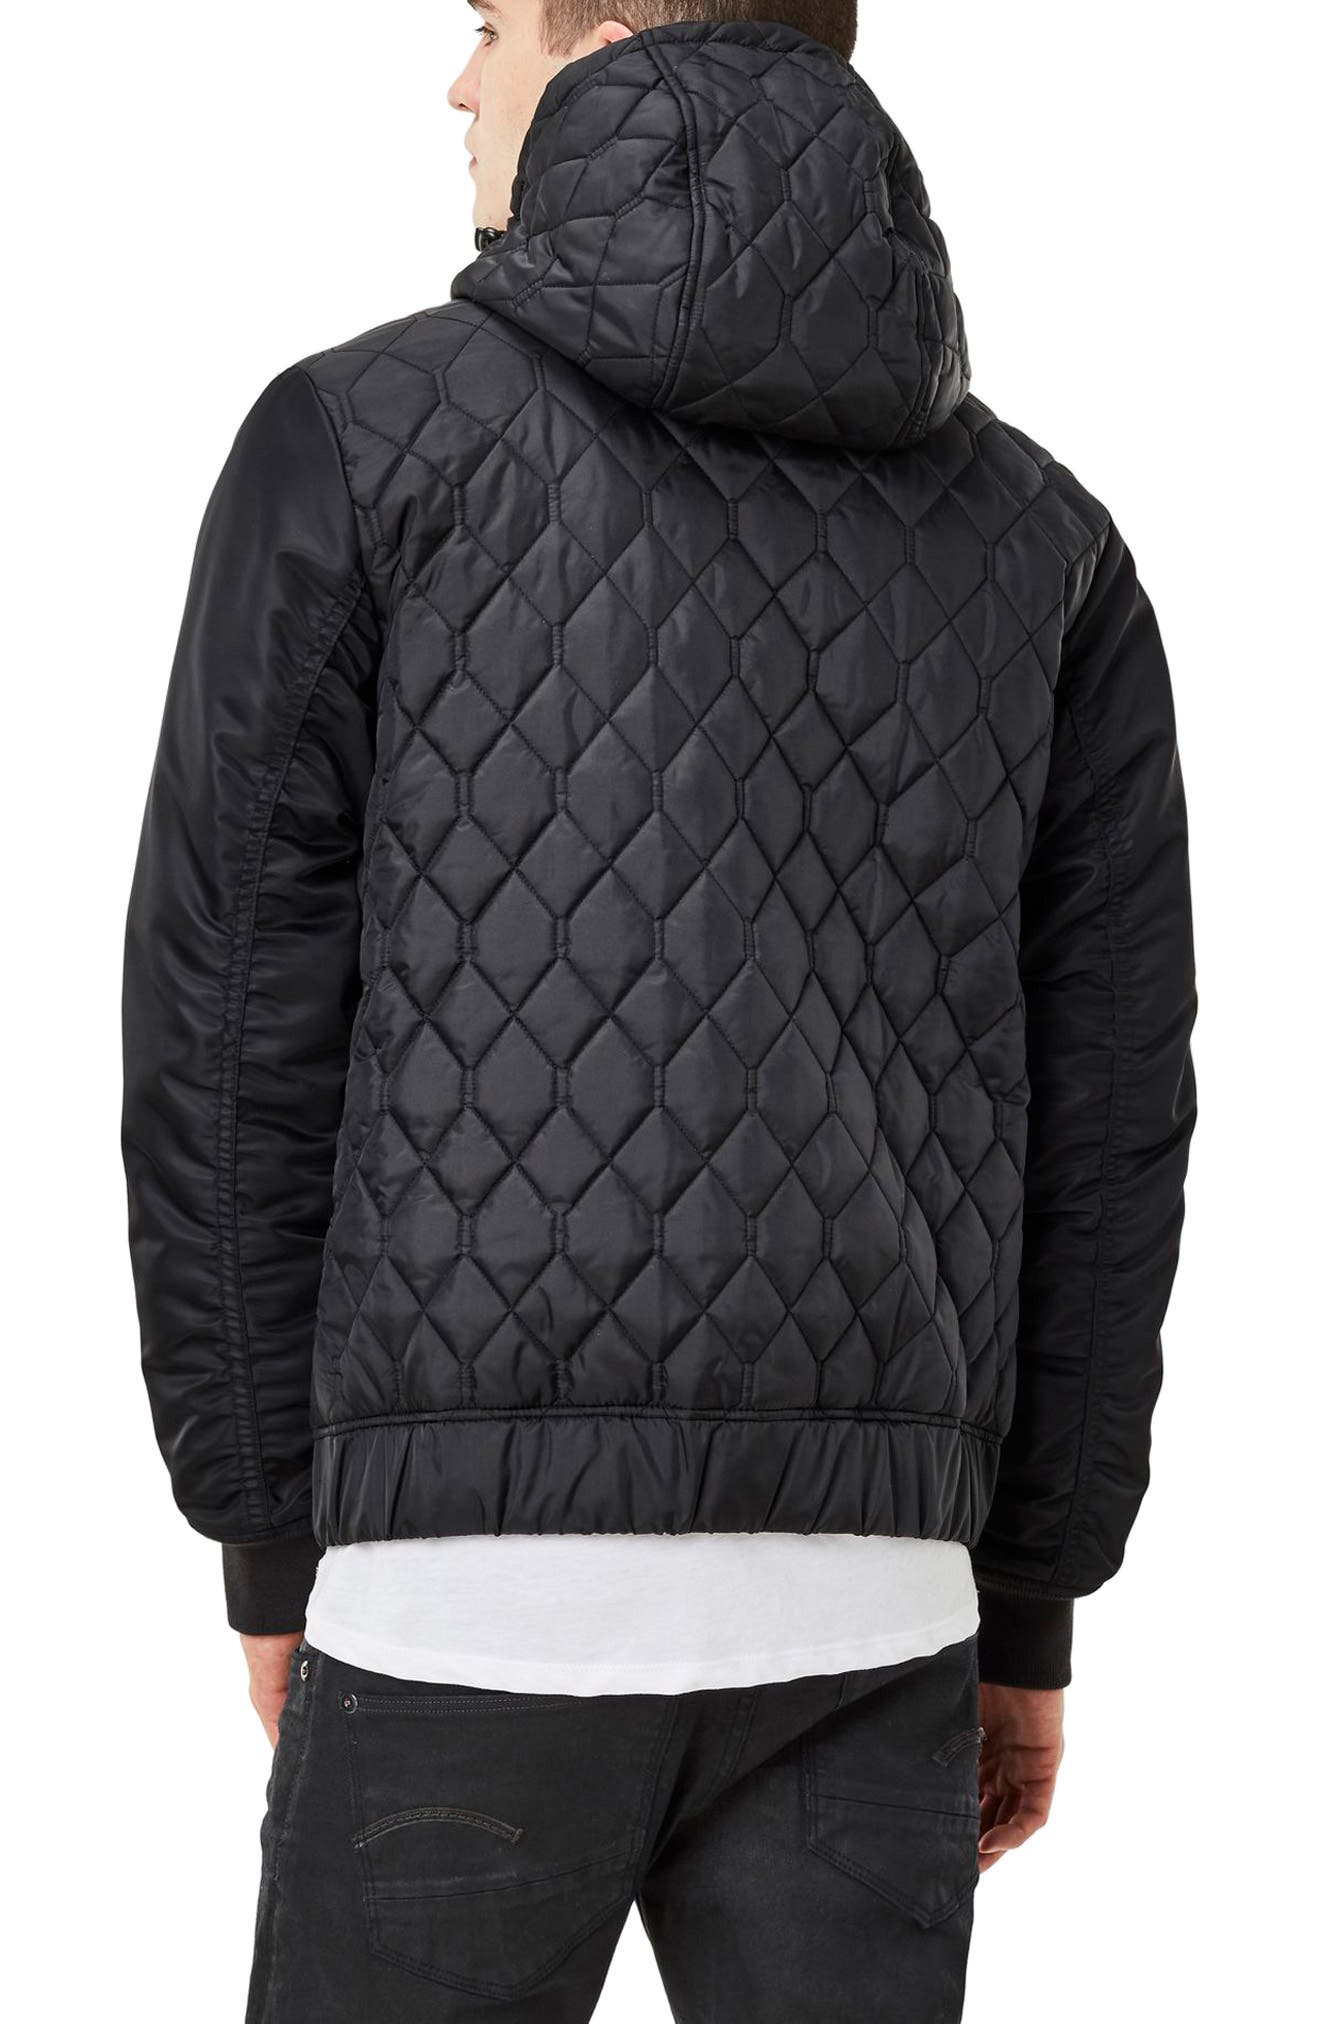 G-STAR RAW,                             Meefic Hybrid Quilted Jacket,                             Alternate thumbnail 2, color,                             001